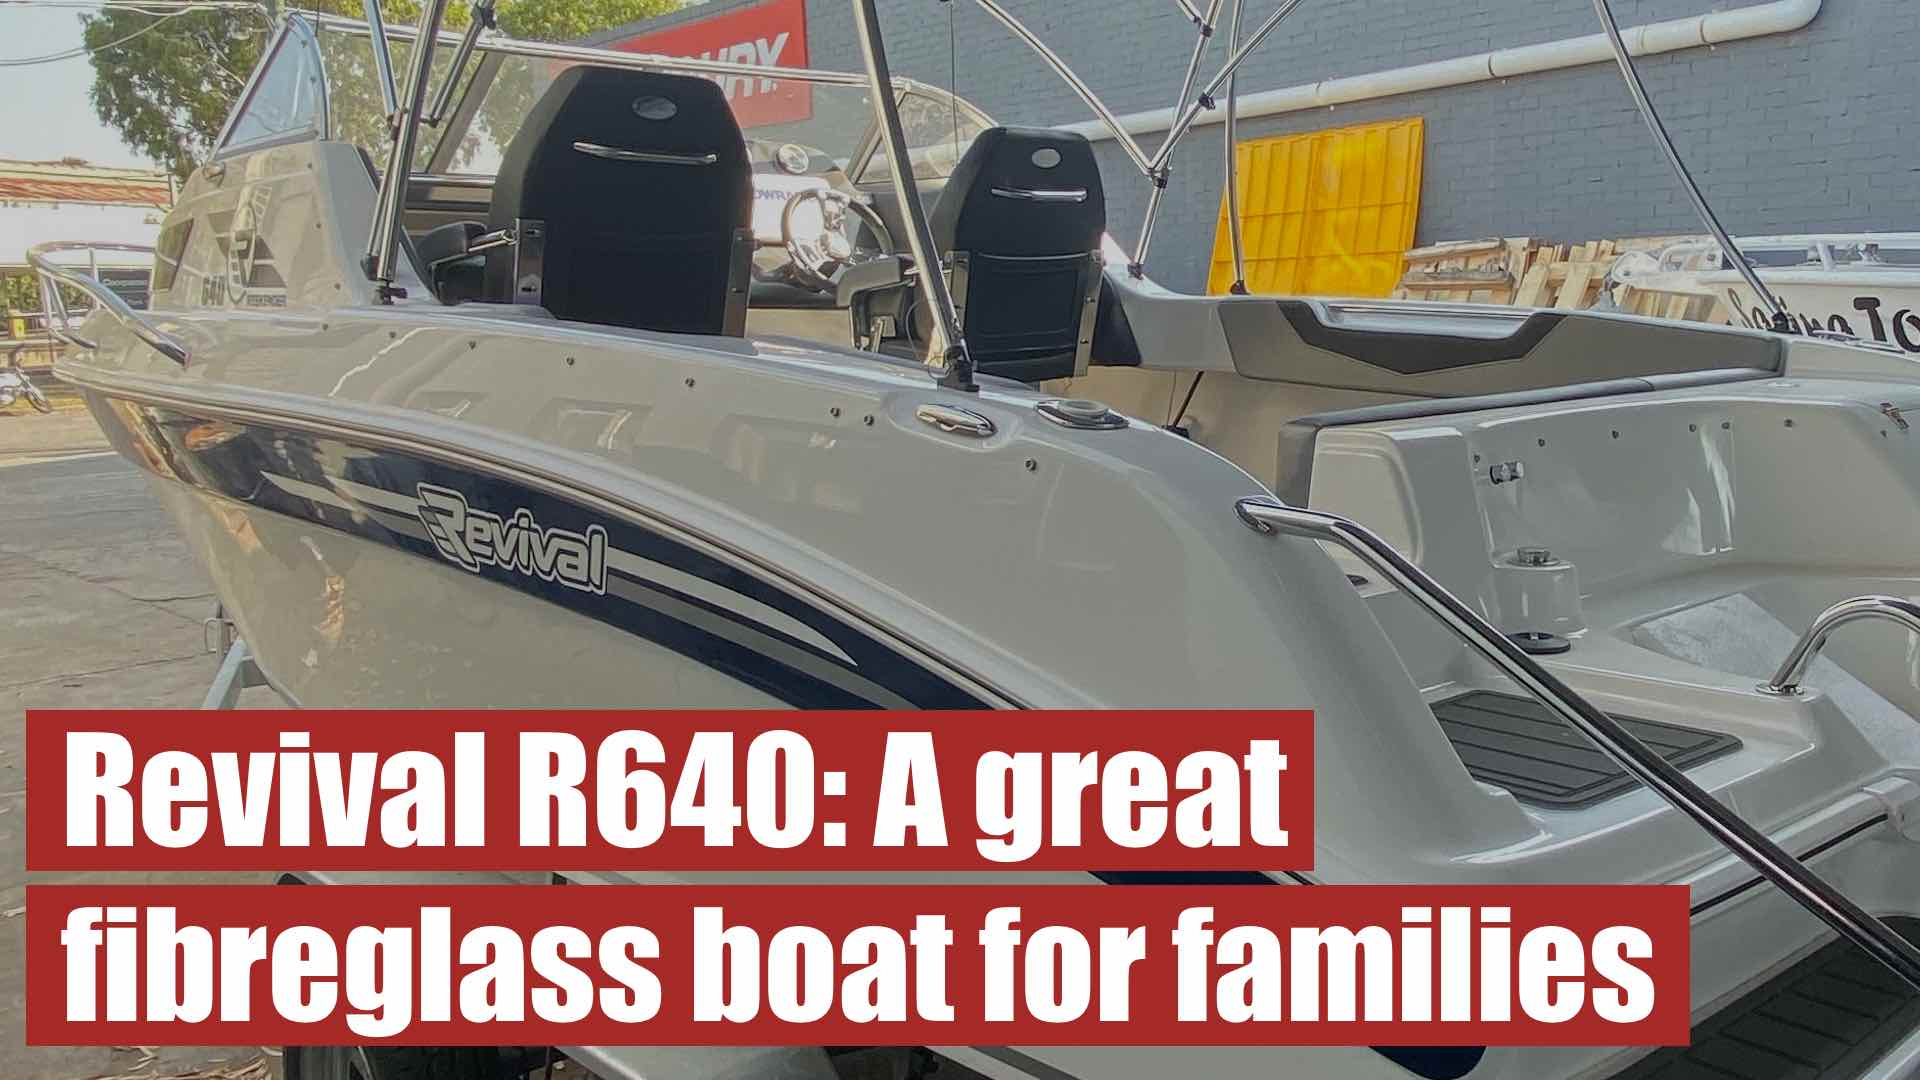 The Revival R640: A Great Fibreglass Boat For Families